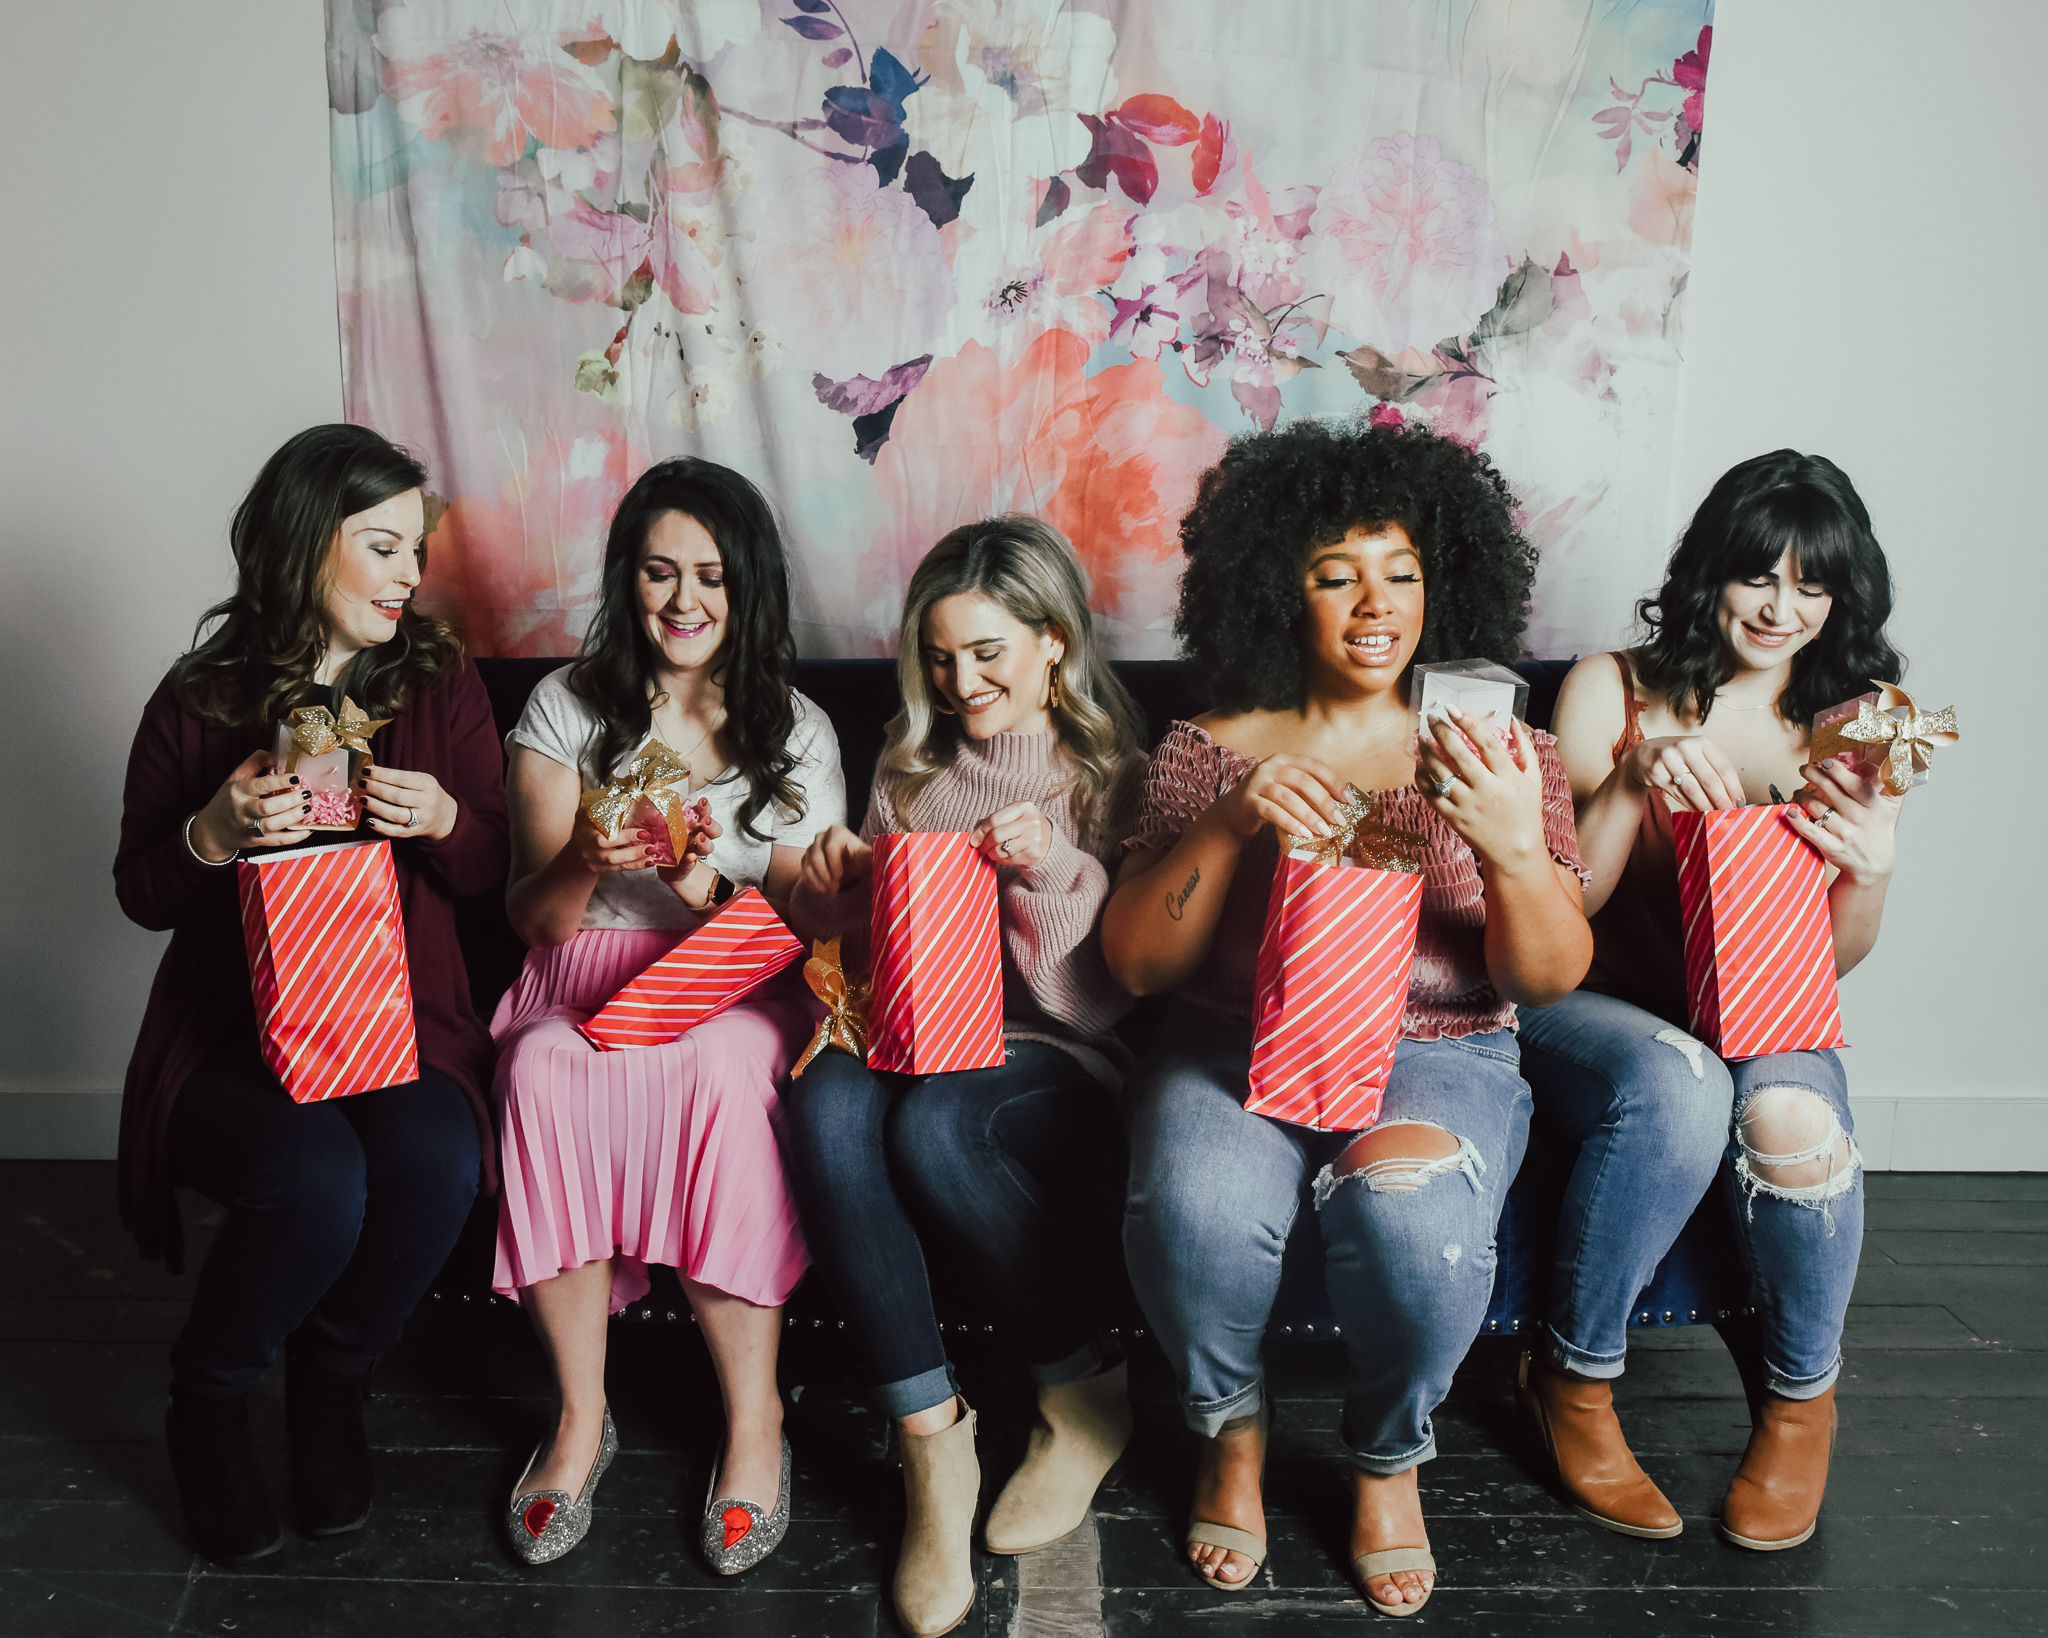 5-IDEAS-FOR-HOSTING-THE-ULTIMATE-GALENTINE'S-DAY-PARTY-4.jpg